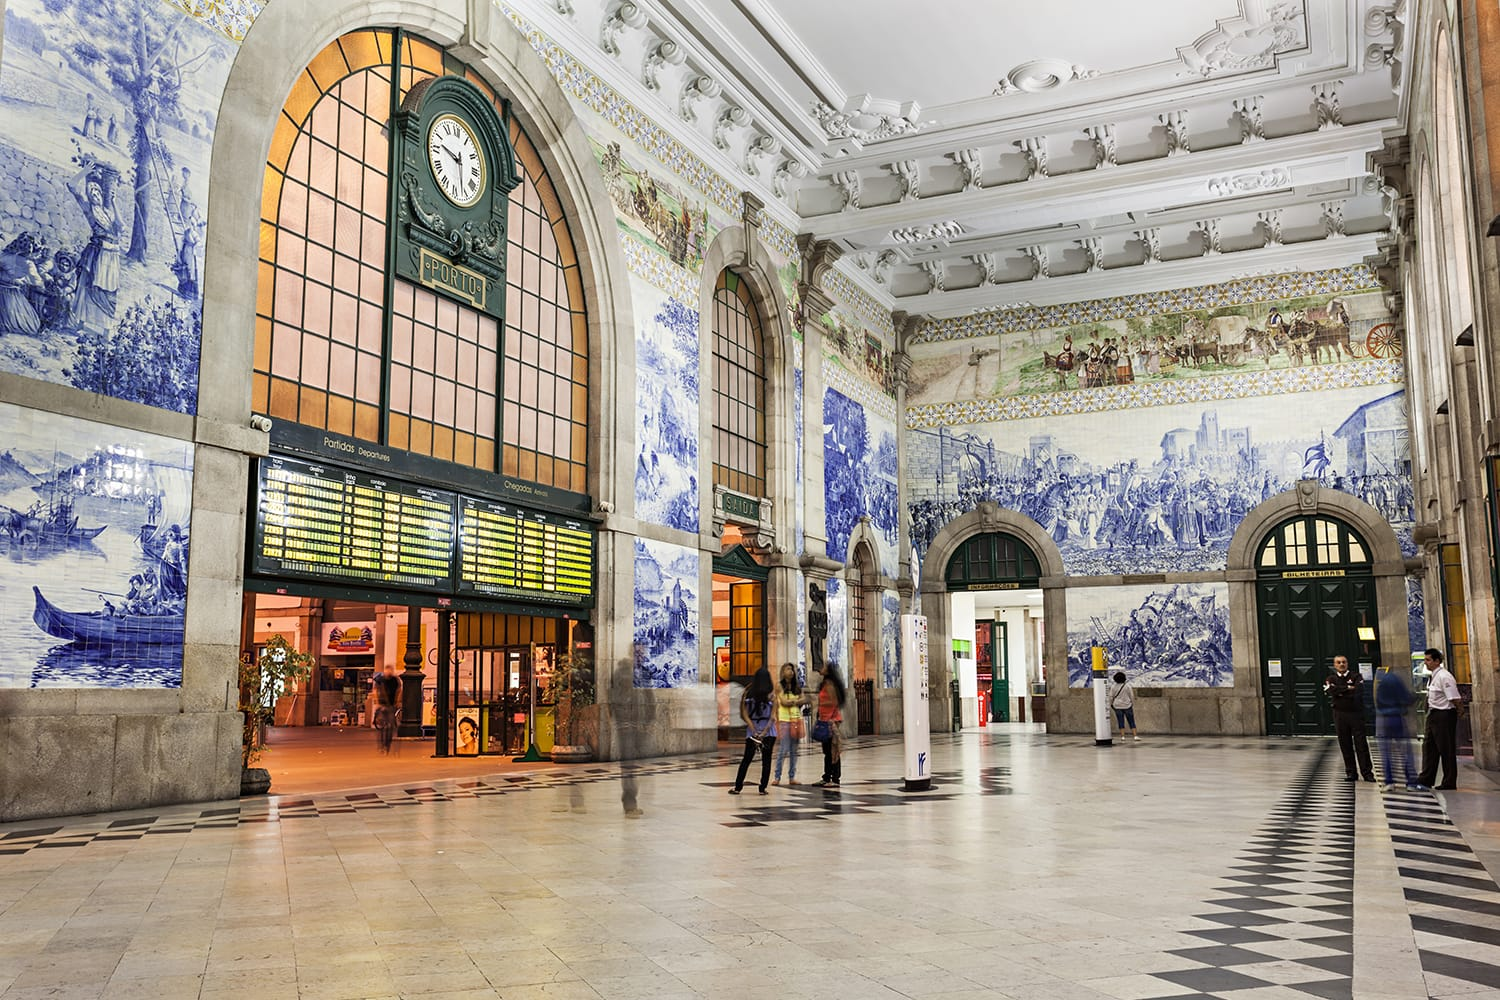 Sao Bento Railway Station in Porto, Portugal